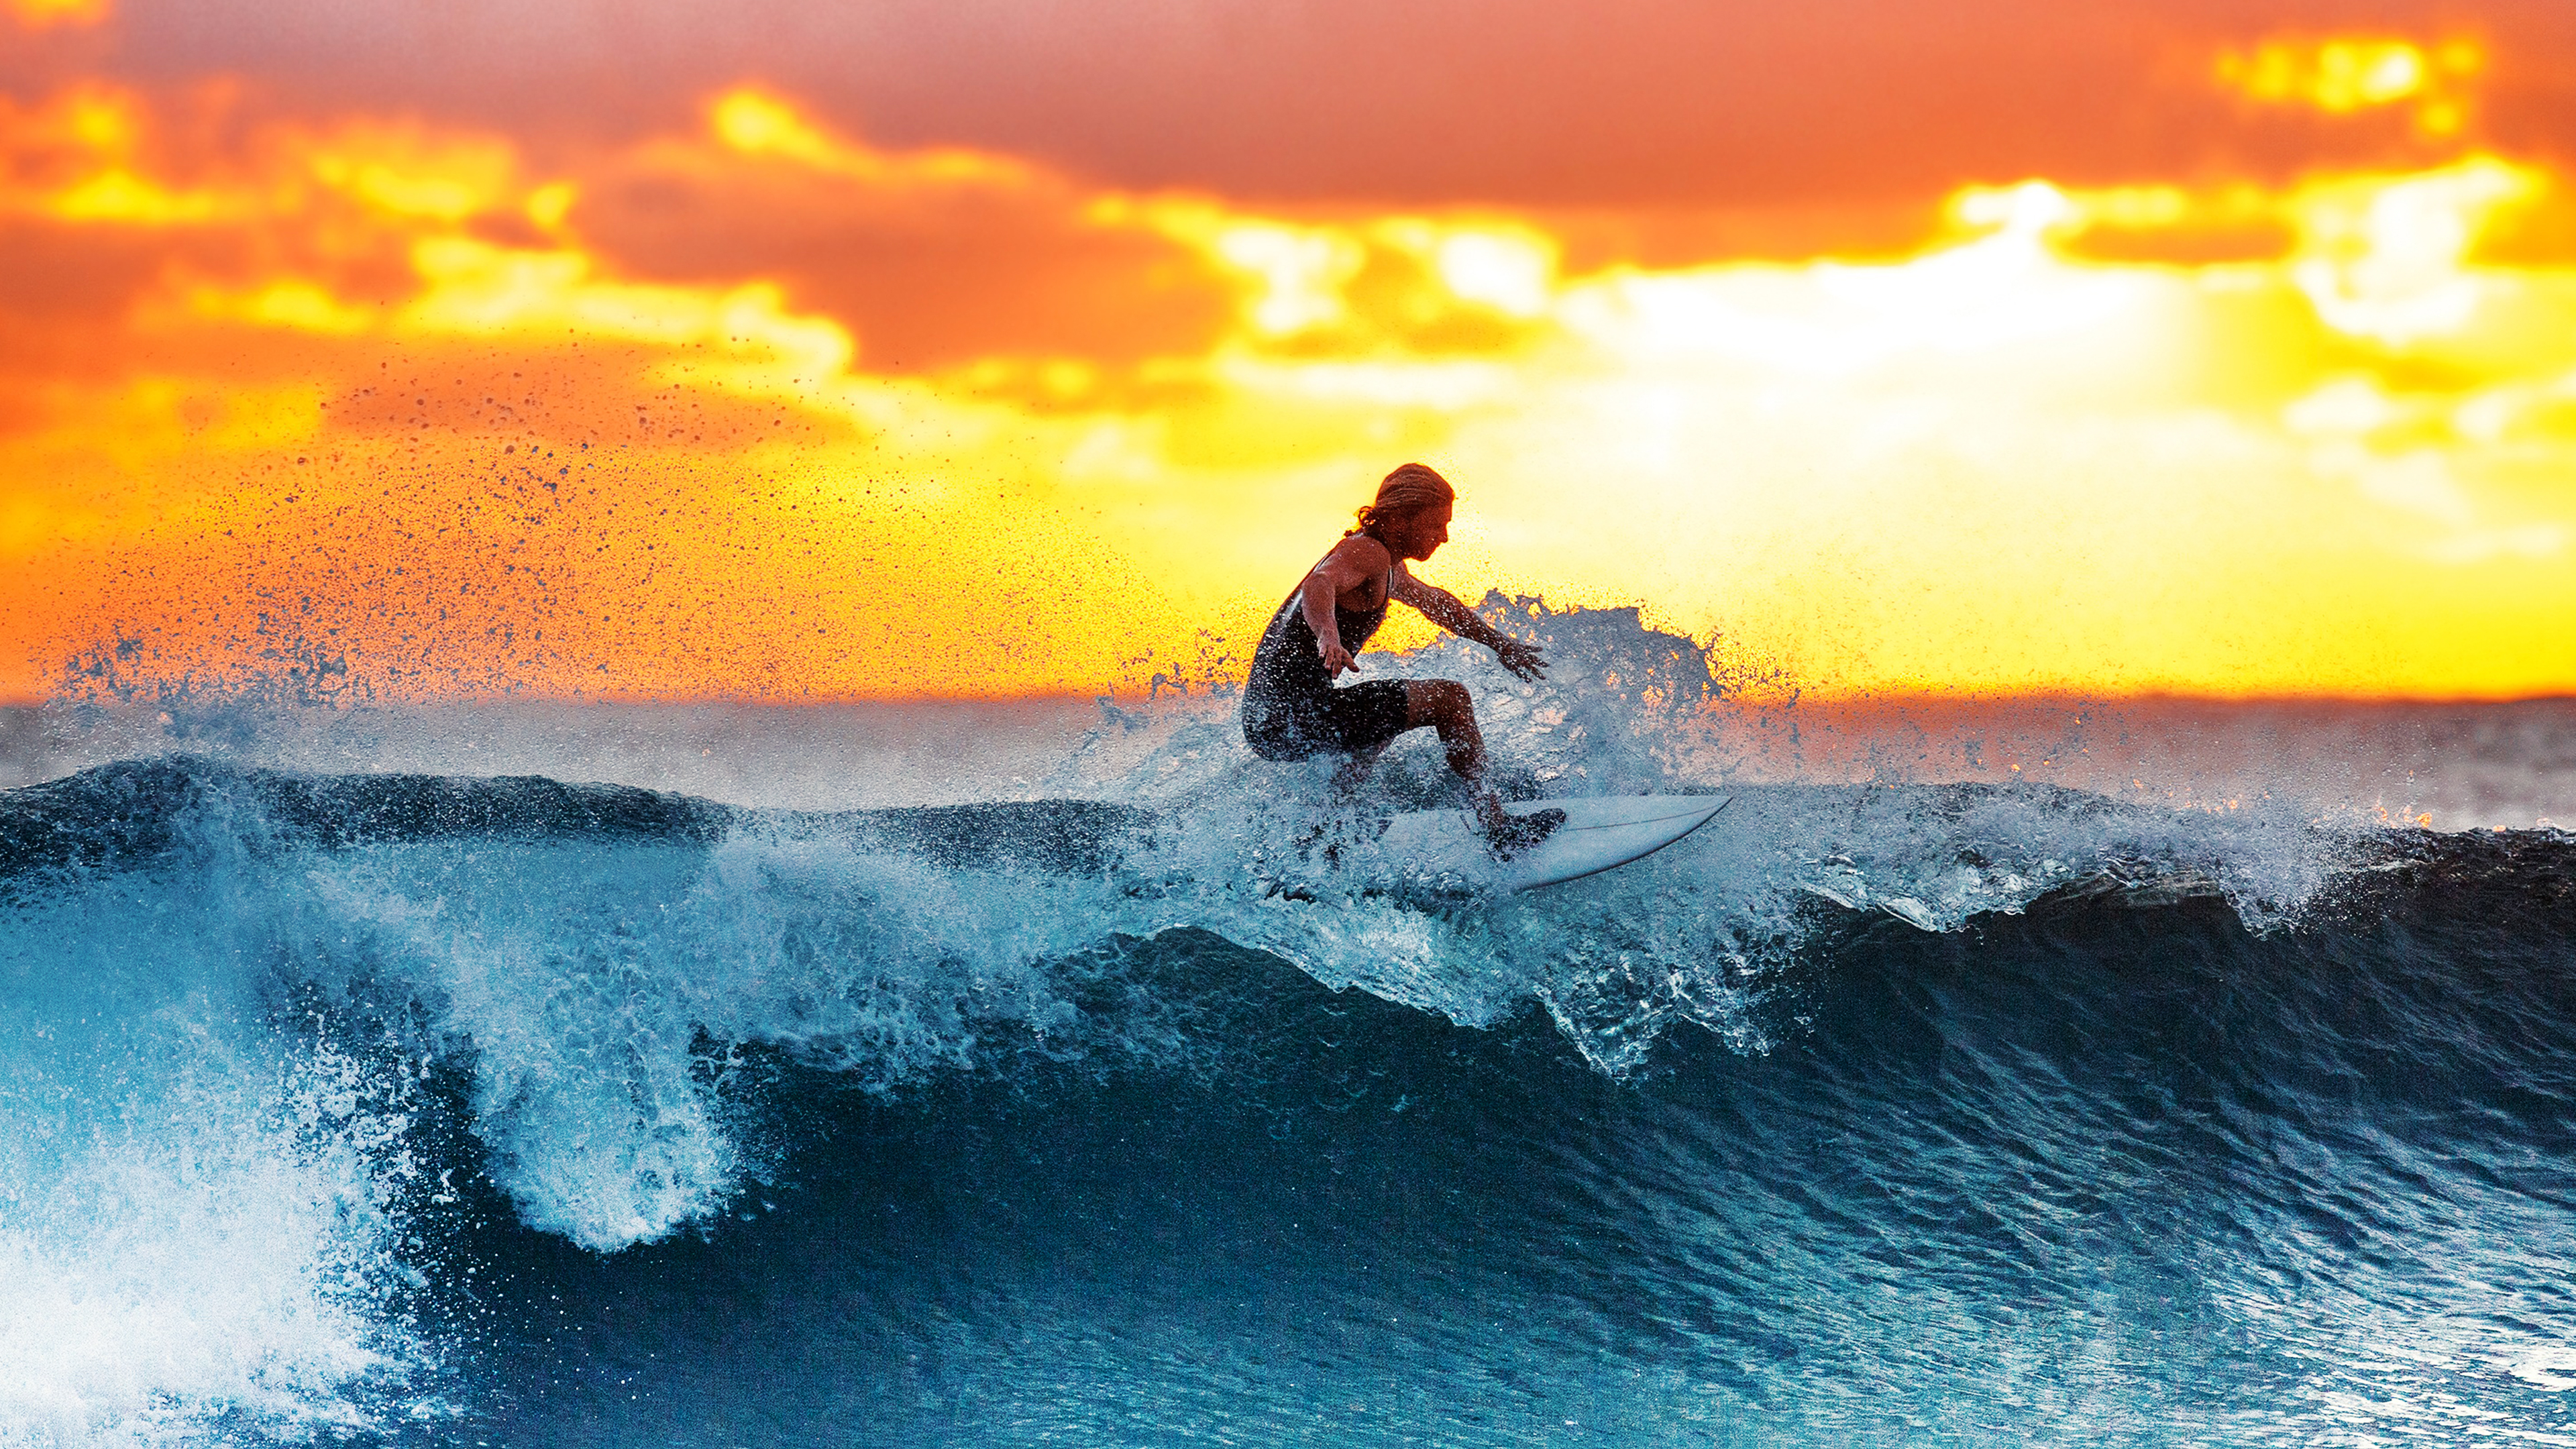 4k Surfer Wallpaper Hd